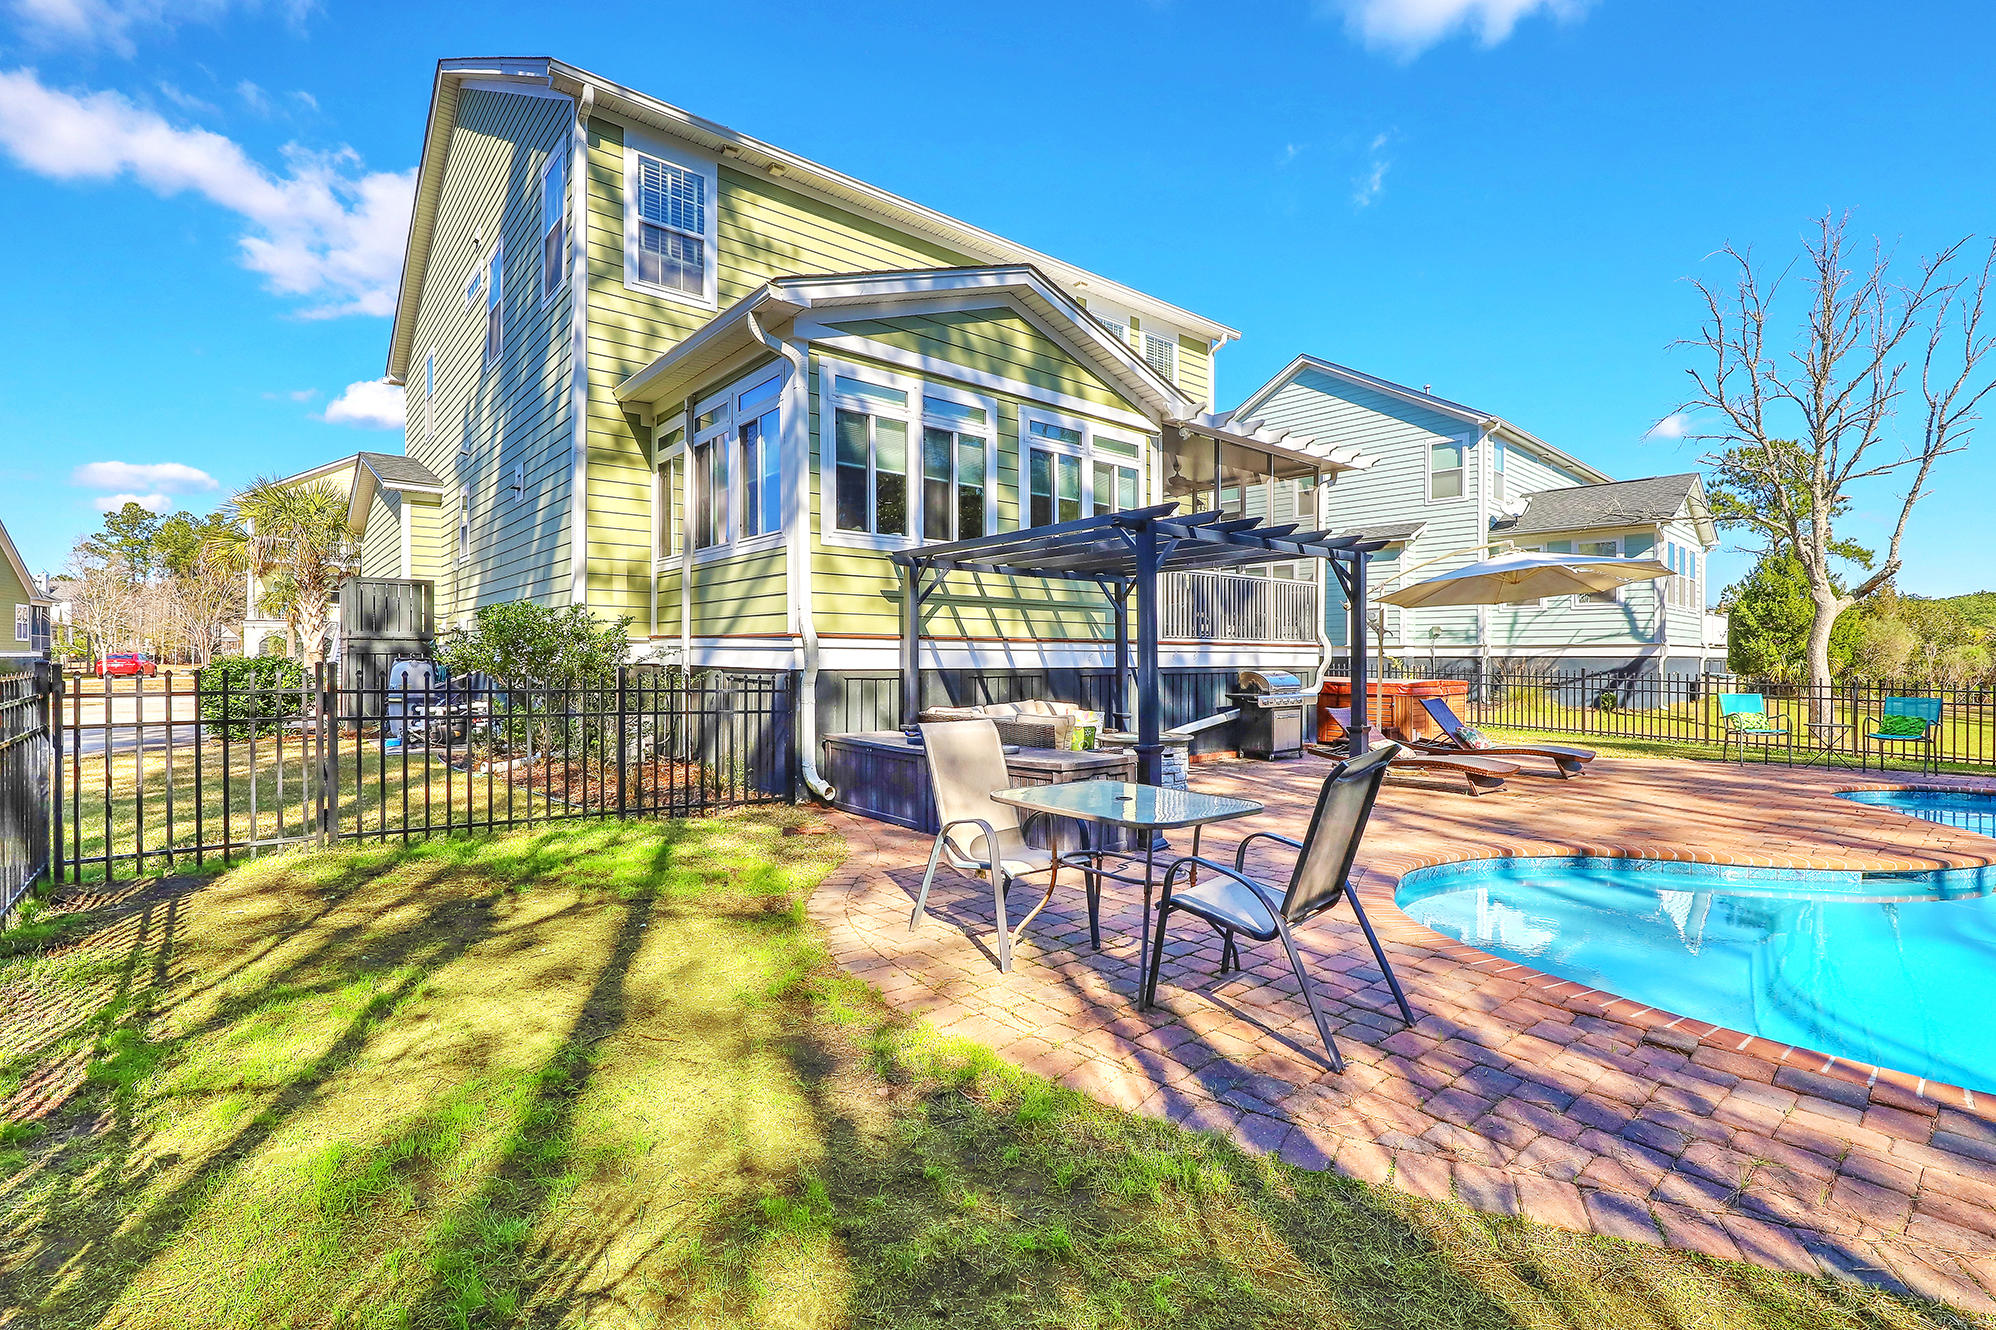 Rivertowne On The Wando Homes For Sale - 2105 Sandy Point, Mount Pleasant, SC - 25